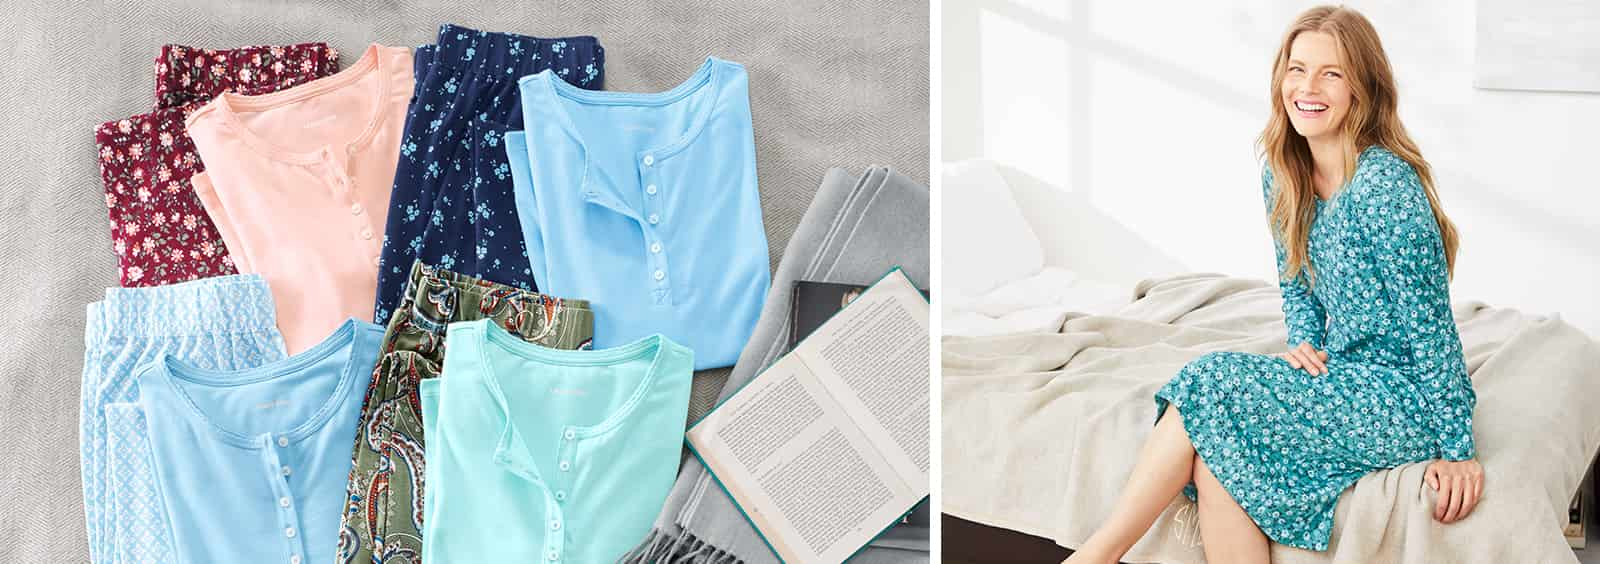 Wearing Pajamas to Bed: Why It Is Better